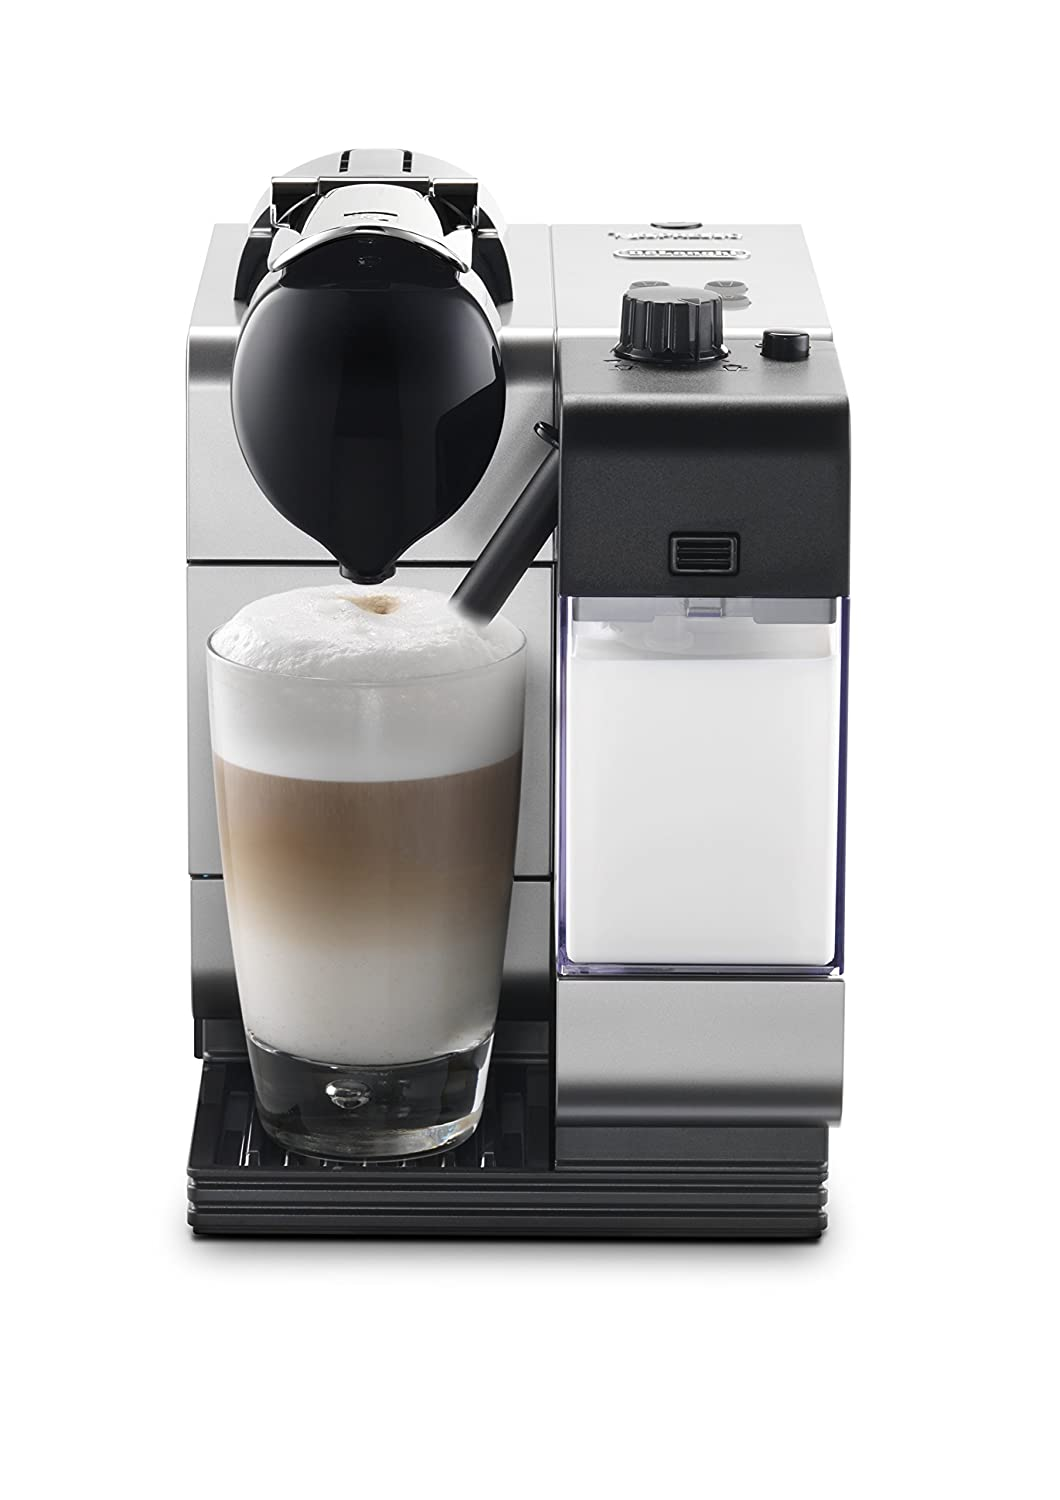 DeLonghi EN520BK Lattissima Plus Espresso Machine, Black DeLonghi America Inc.